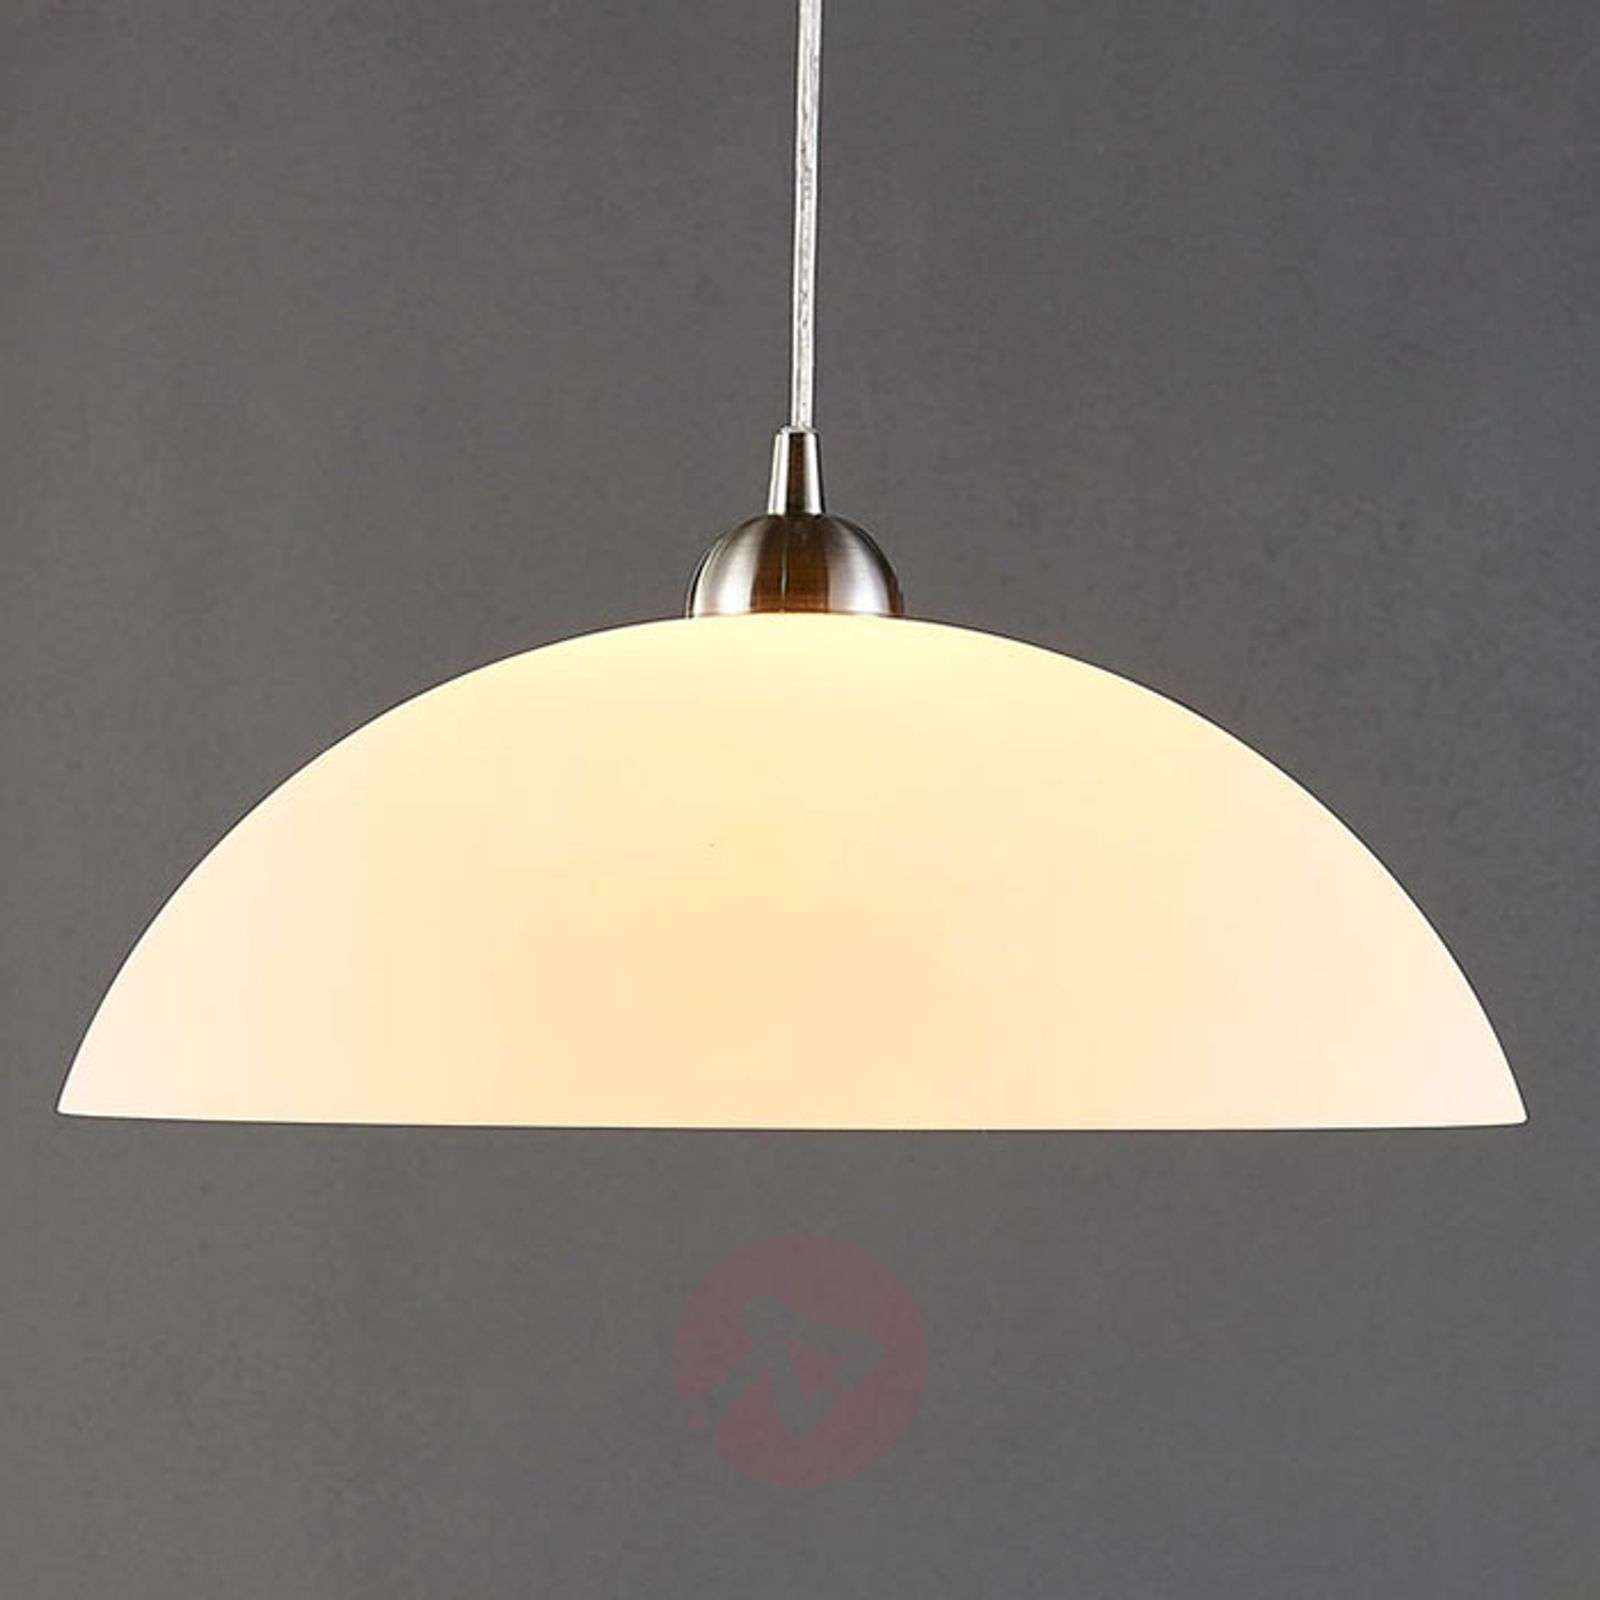 Round glass hanging light Valeria for the kitchen-9621039-02